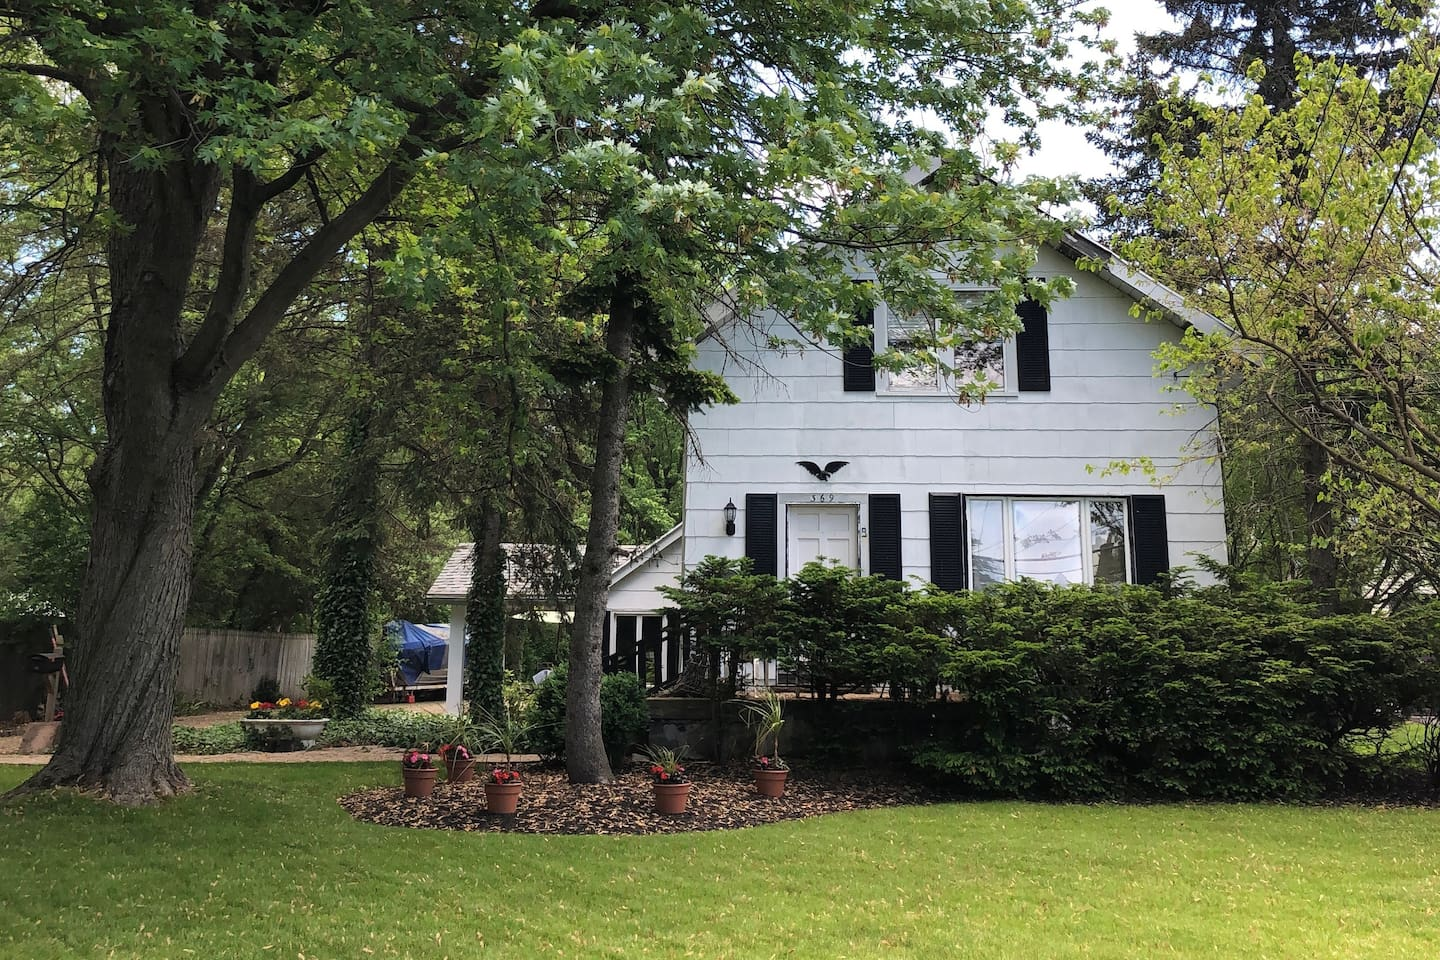 This is the front of our home.  We are set back from the road with an enormous backyard.  It is a slice of country in the 'burbs! The in-law space has its own side entrance.  Joe and Jill live in the front and love to garden.